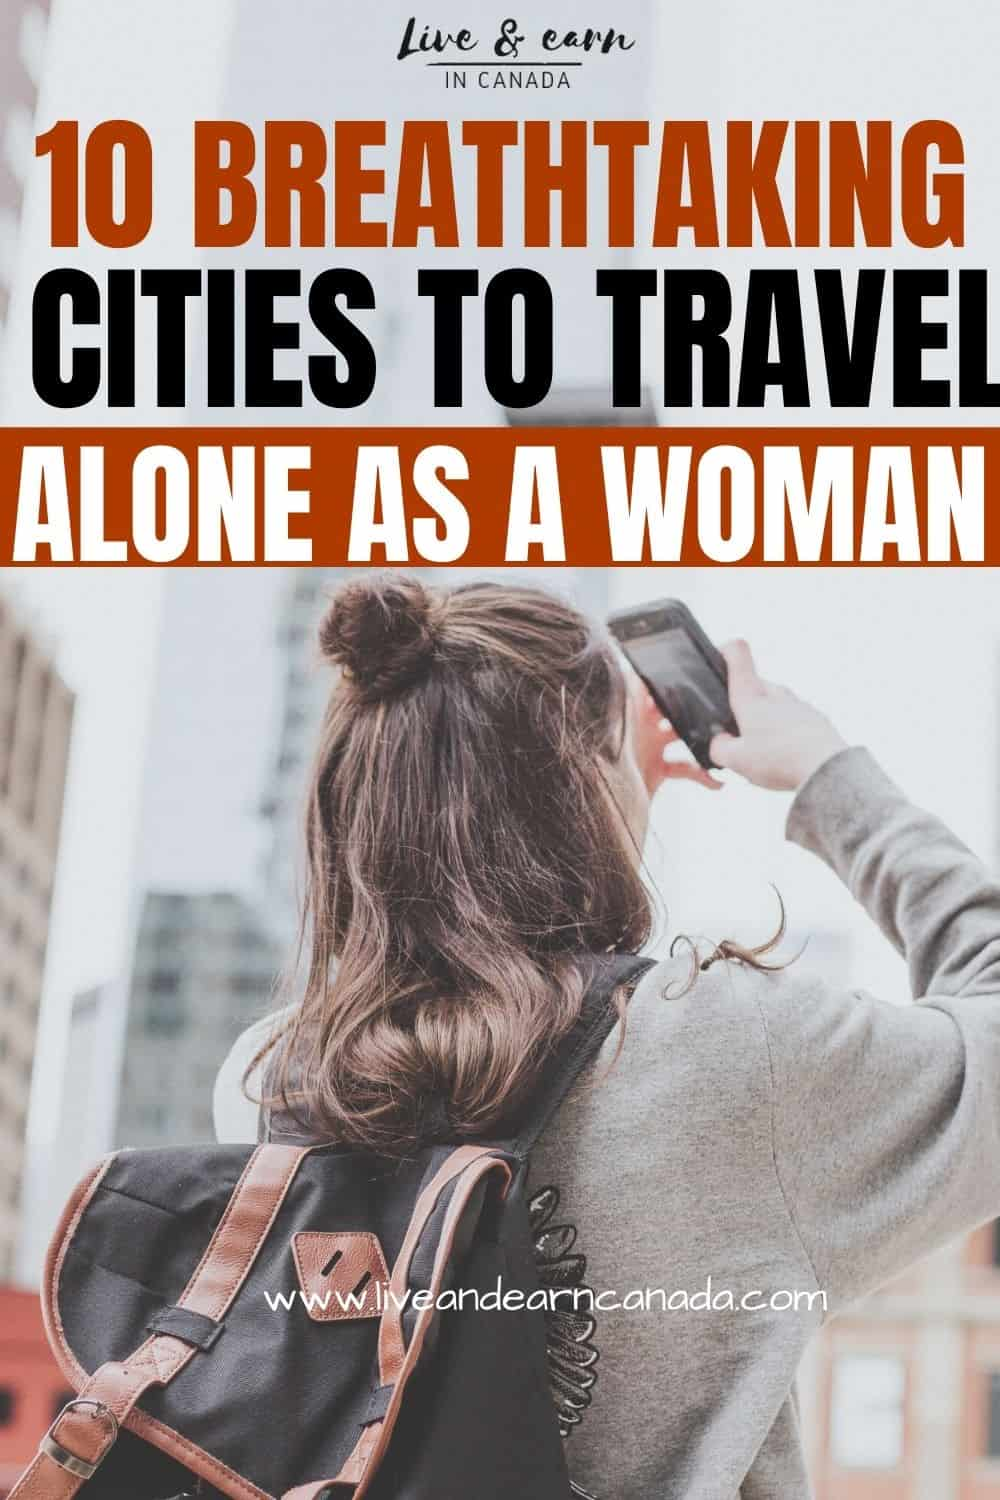 We have listed the best places to travel alone for women, in this post, you will find the best solo female destinations that are totally safe to go to alone. Find safety tips to travel alone as a woman #travelalone #femalesolotrips